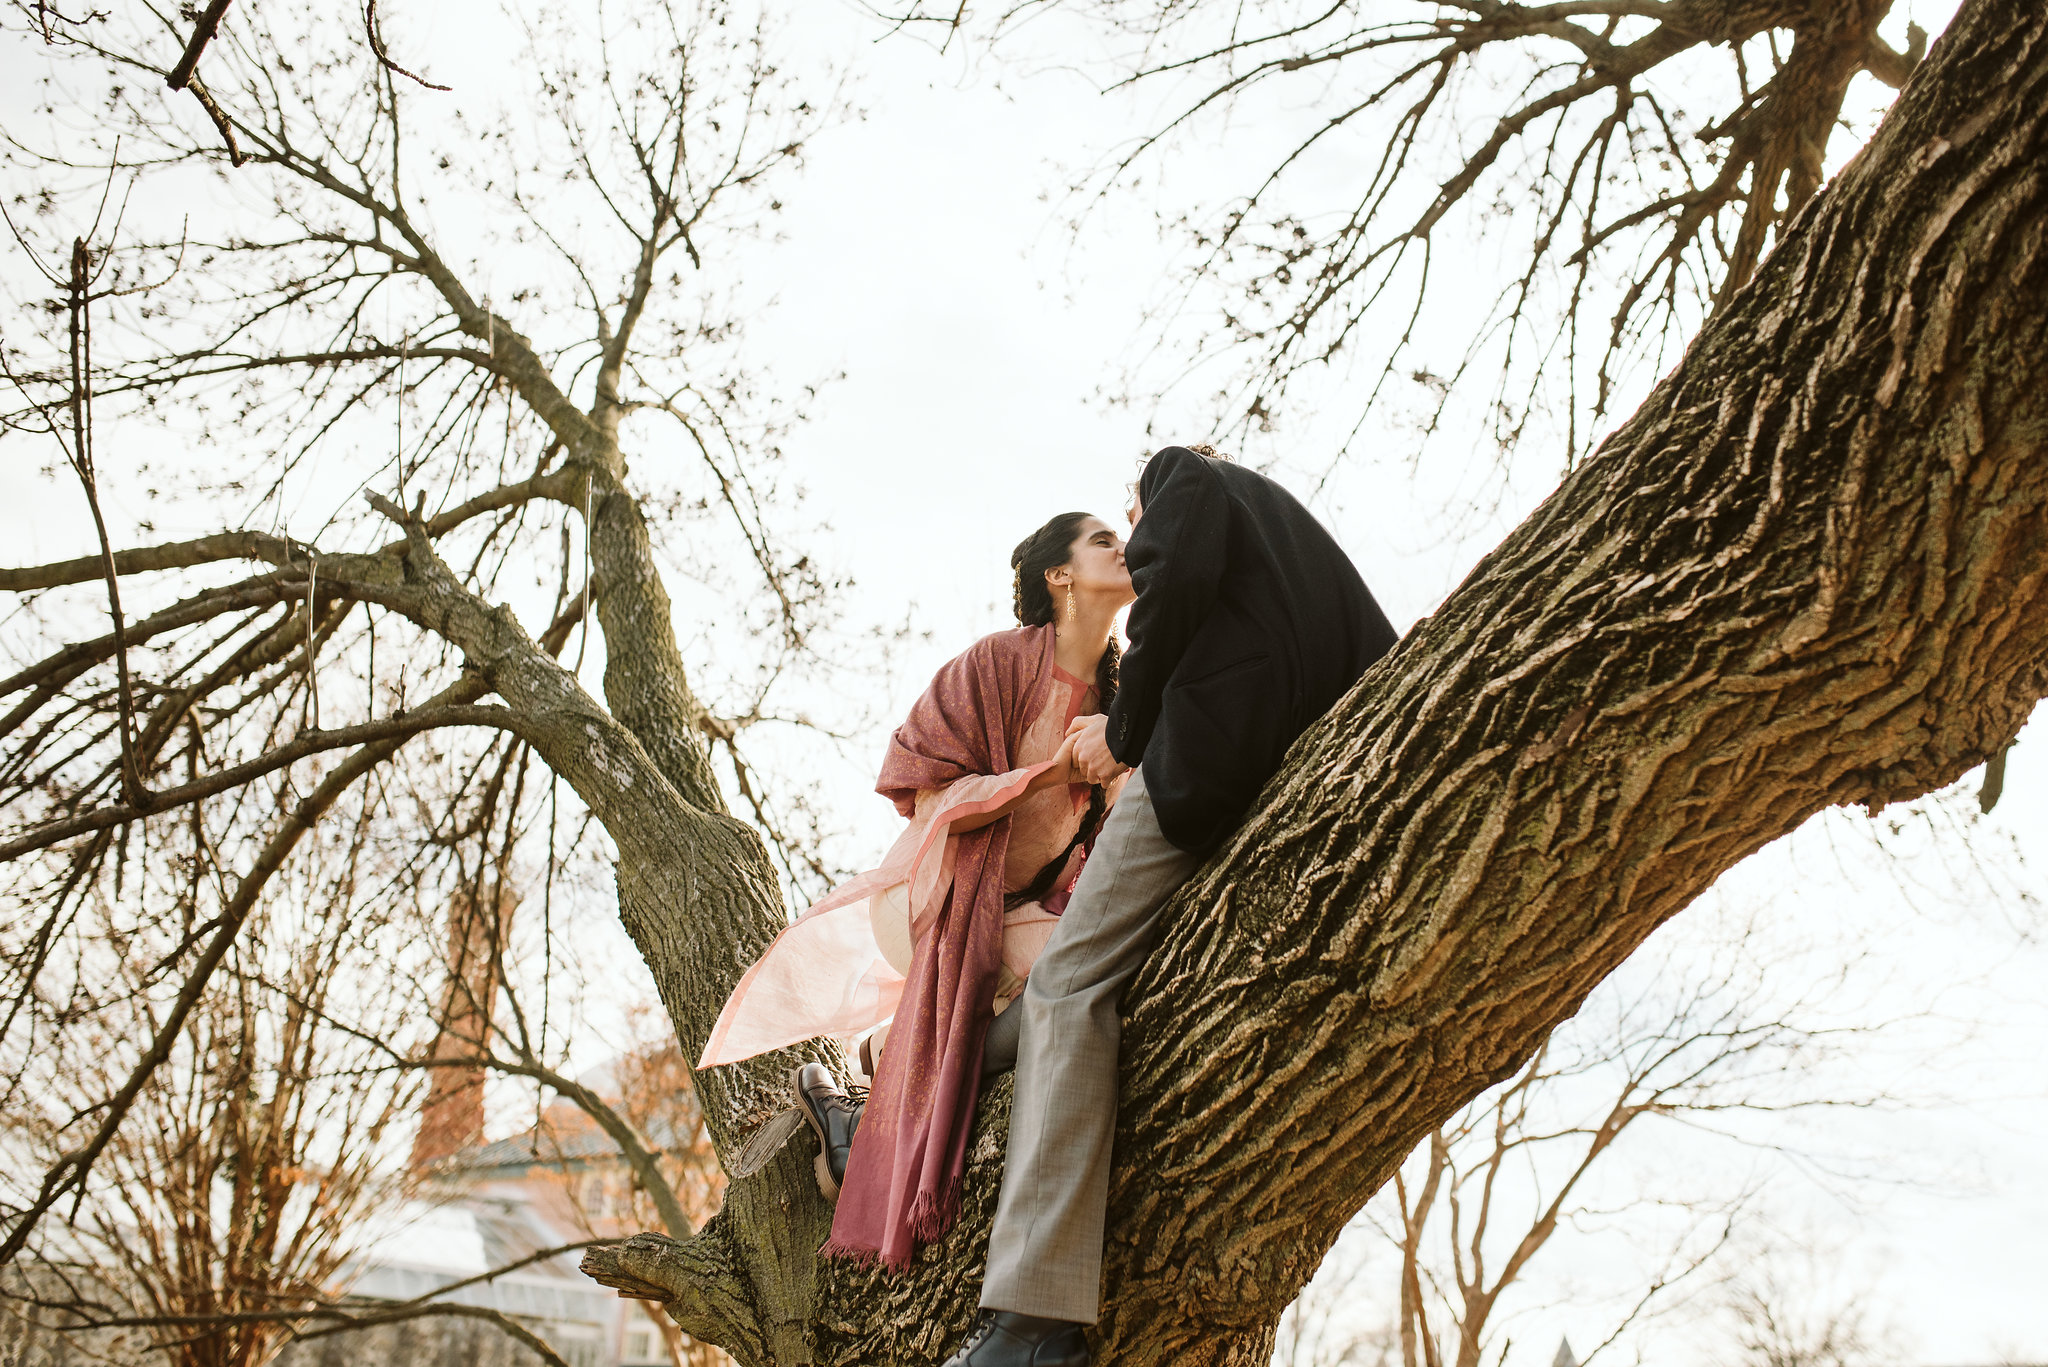 Elopement, Weekday Wedding, Towson, Rawlings Conservatory, Greenhouse, Baltimore Wedding Photographer, Indian American, Outdoor, Nature, Romantic, Garden, Whimsical, Bride and Groom, Kissing in a Tree